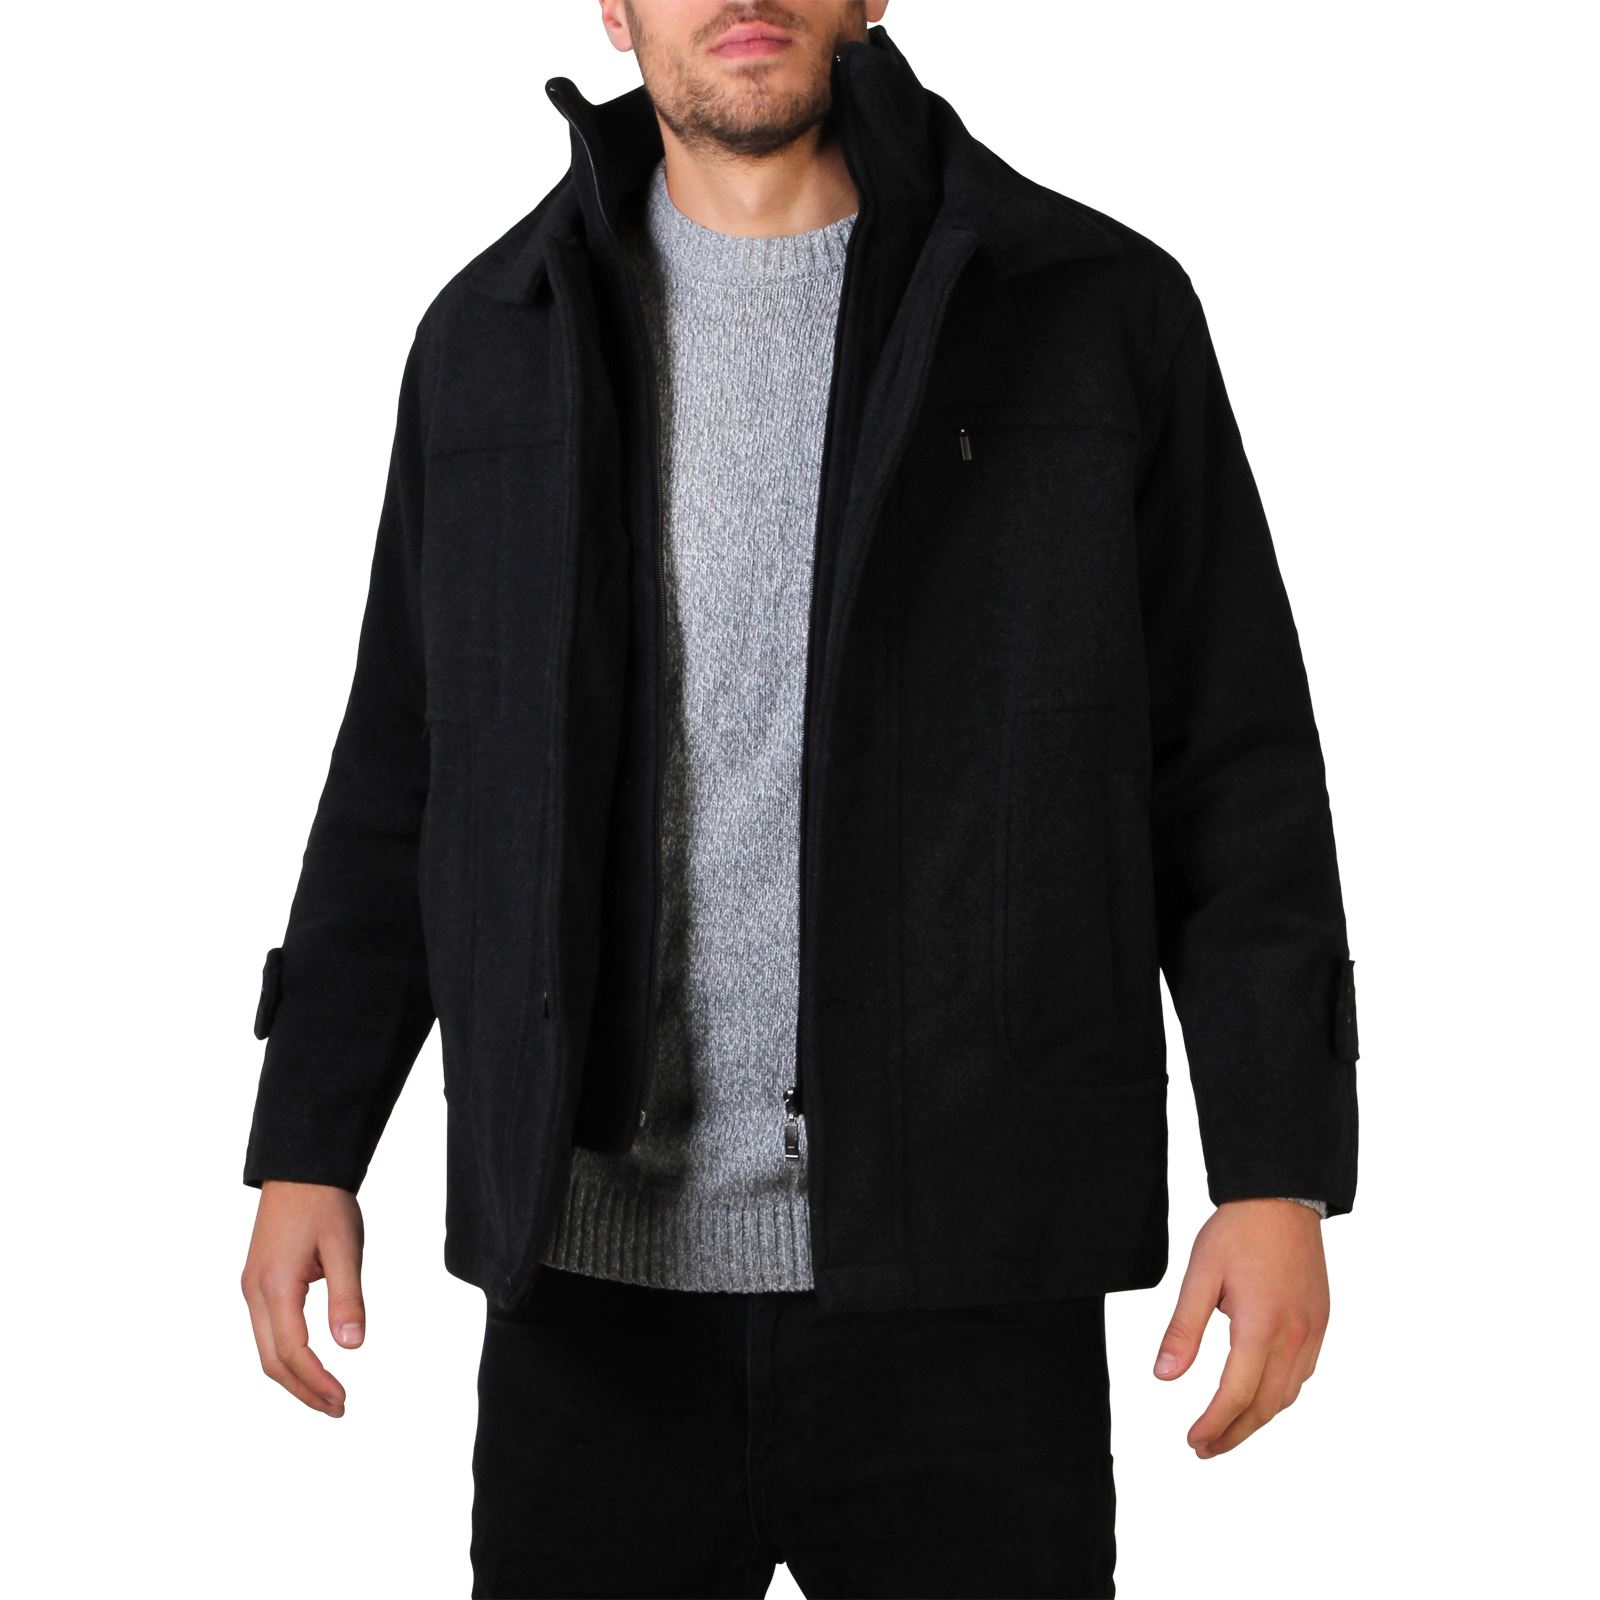 Discover jackets for men and men's coats with ASOS. Shop from a range of styles, from leather jackets, trench and college jackets with ASOS.